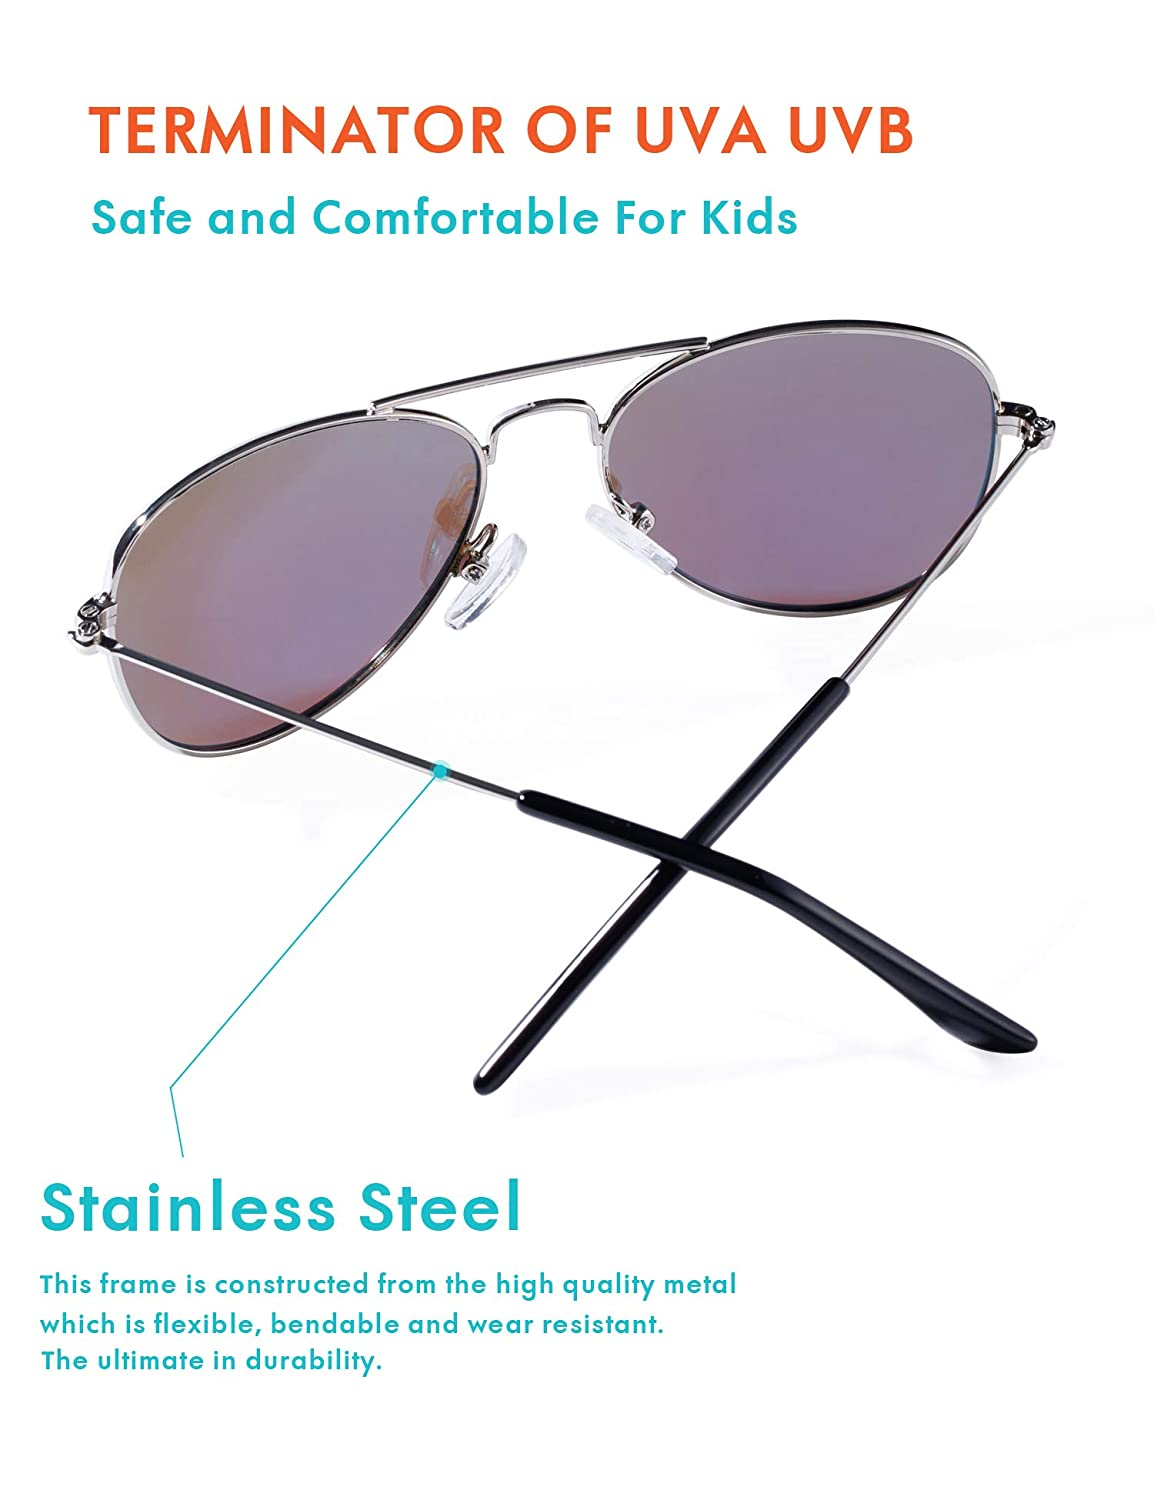 Silver, Purple 49MM Aviator Polarized Sunglasses for Kids Boys and Girls with Case UVB UV 400 Protection Youth Eyewear Age 2-8